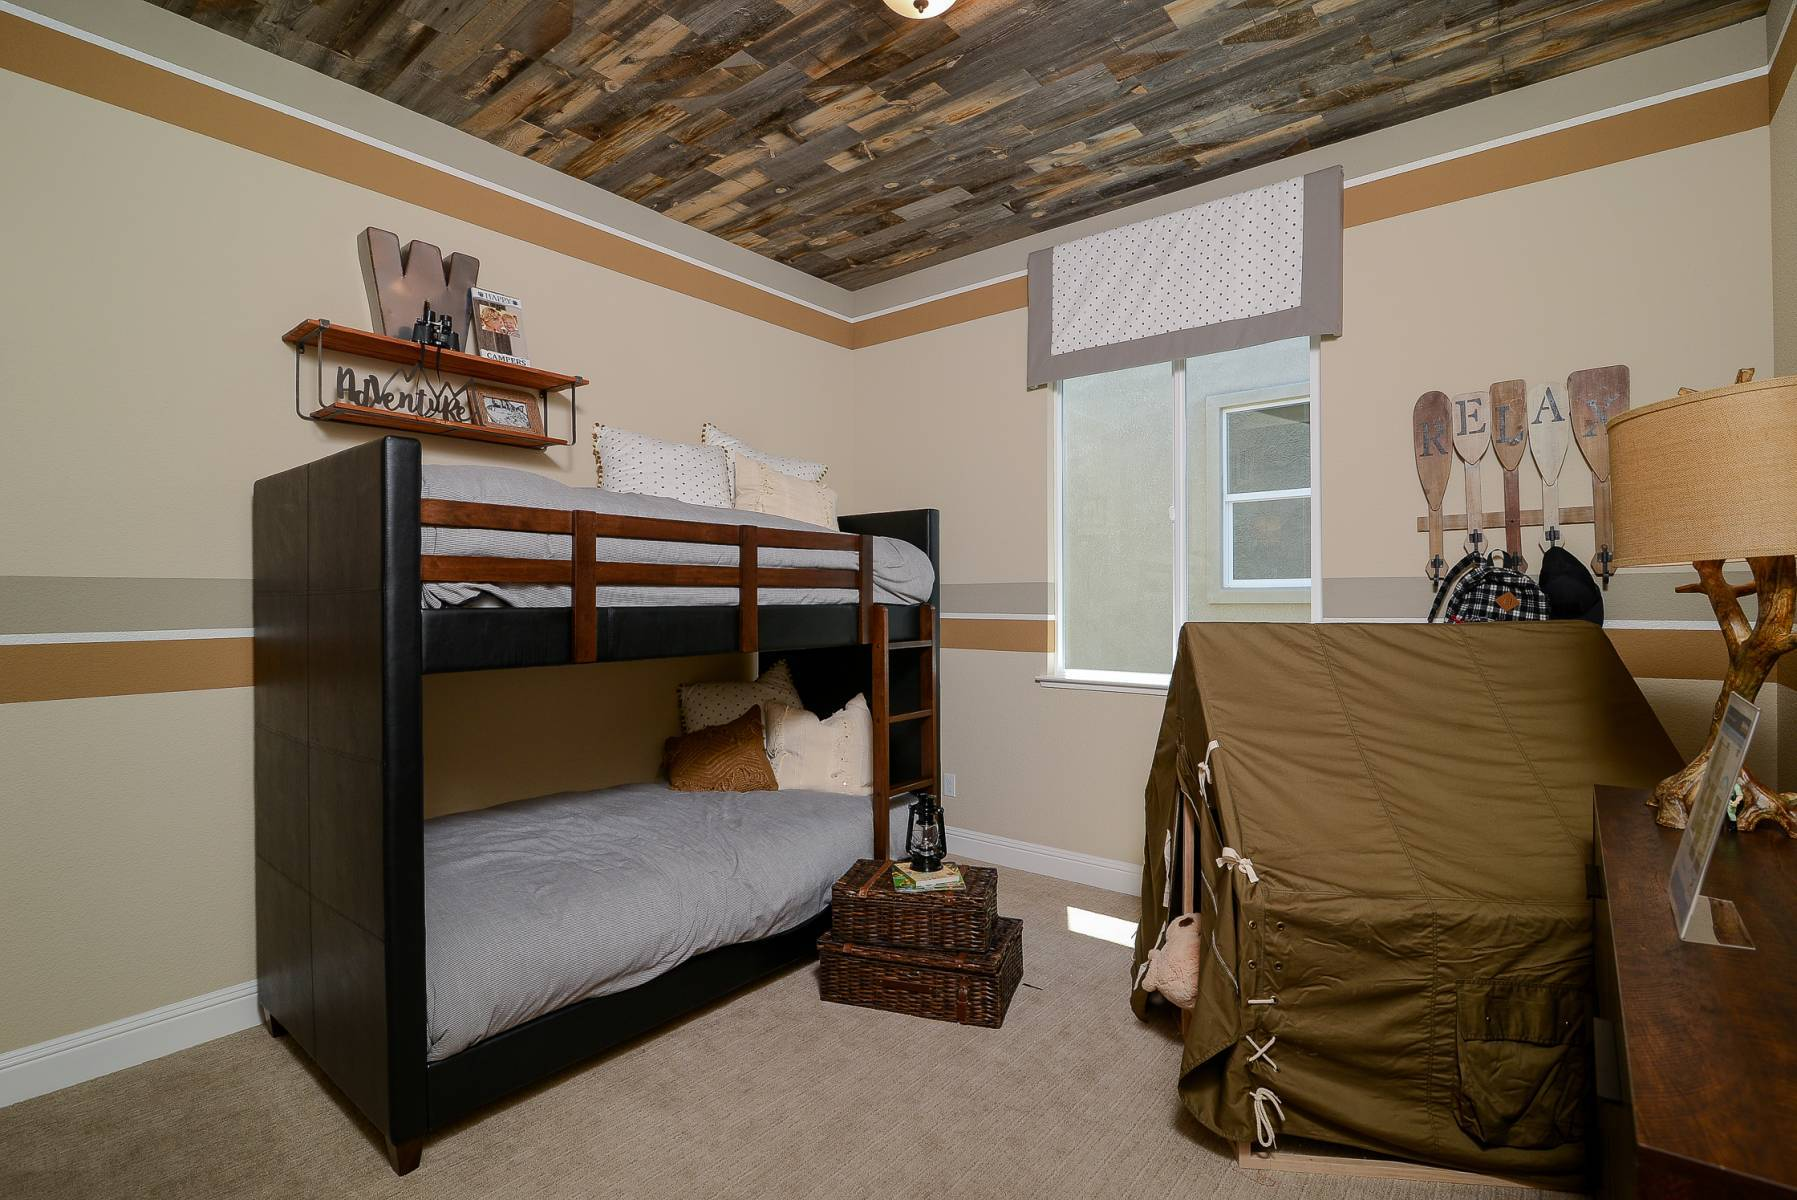 Bedroom featured in the Dolcetto By Elliott Homes in Stockton-Lodi, CA